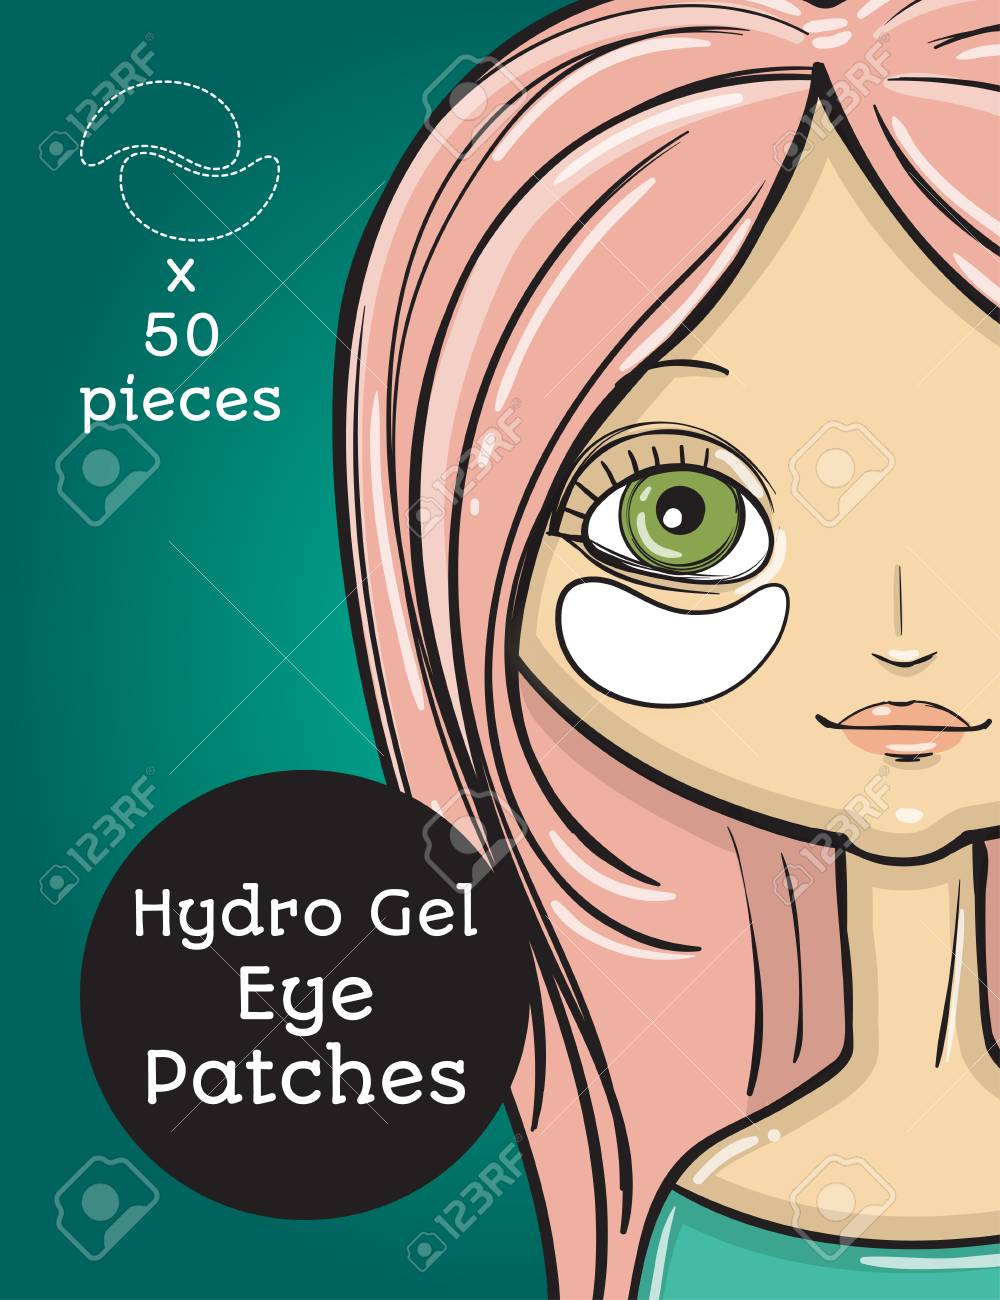 Hydro Gel eye Patches ads. Vector Illustration with girl, package..